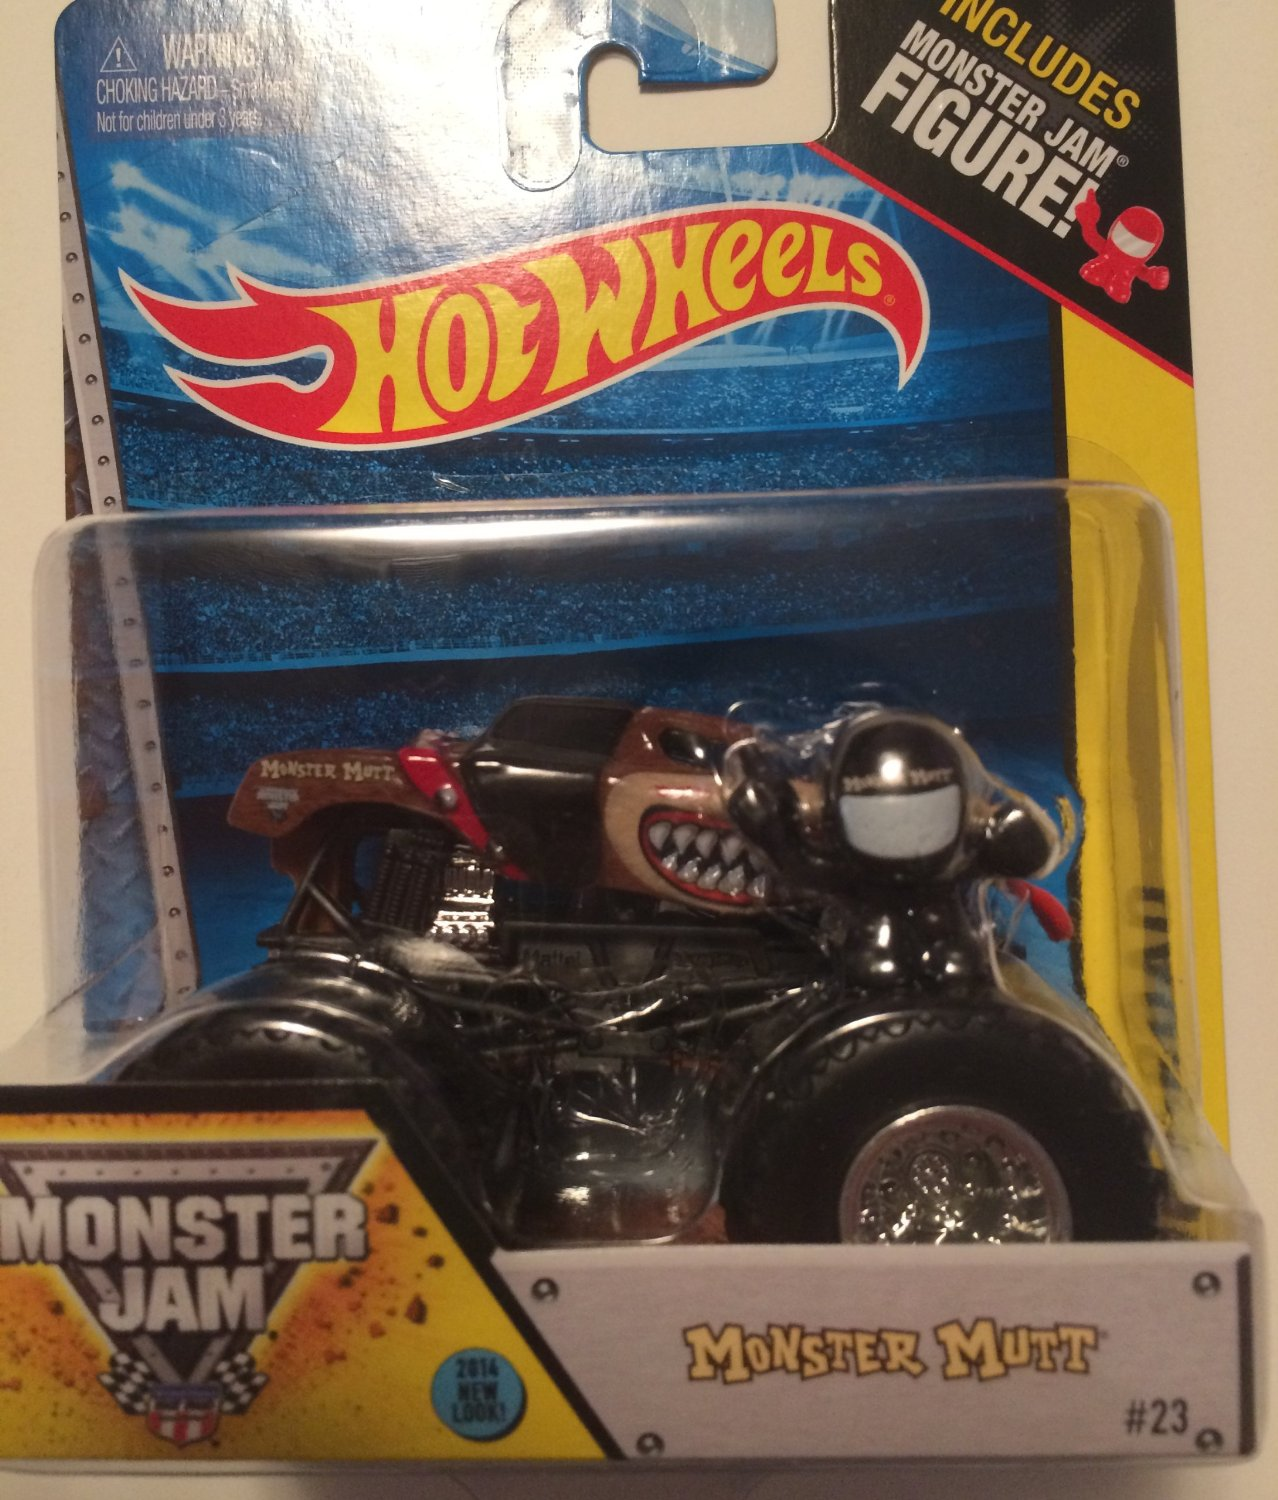 Monster Mutt #23 (Red Collar) New Look 2014 Hot Wheels Monster Jam 1:64 Scale Off Road Truck